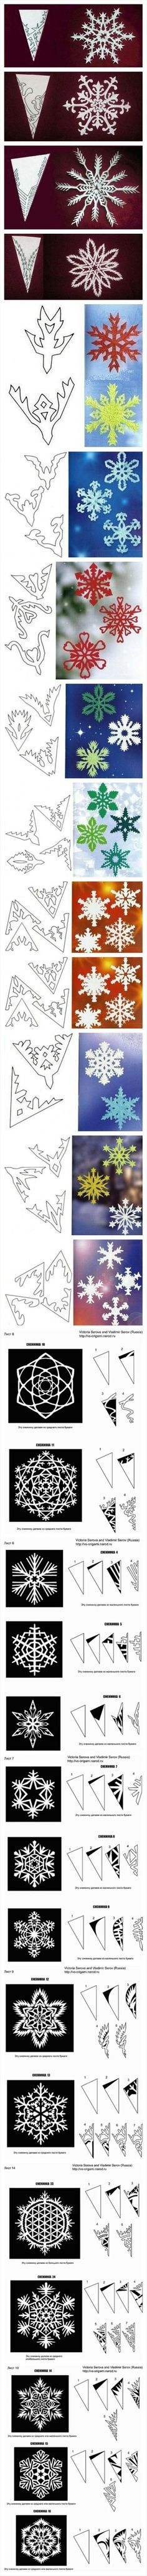 Tons of snowflake patterns